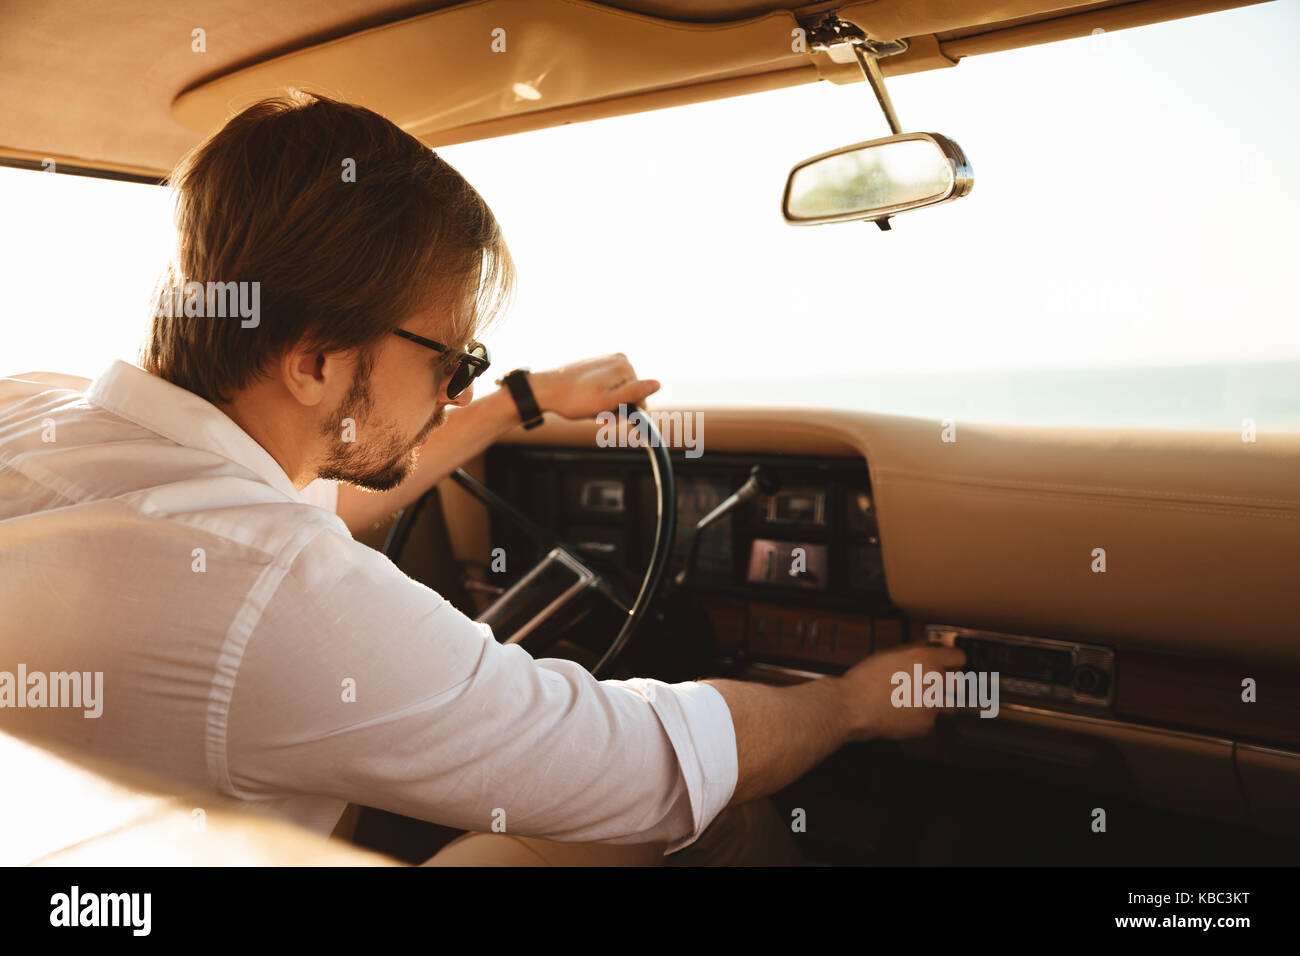 Stereo System Stock Photos & Stereo System Stock Images - Alamy